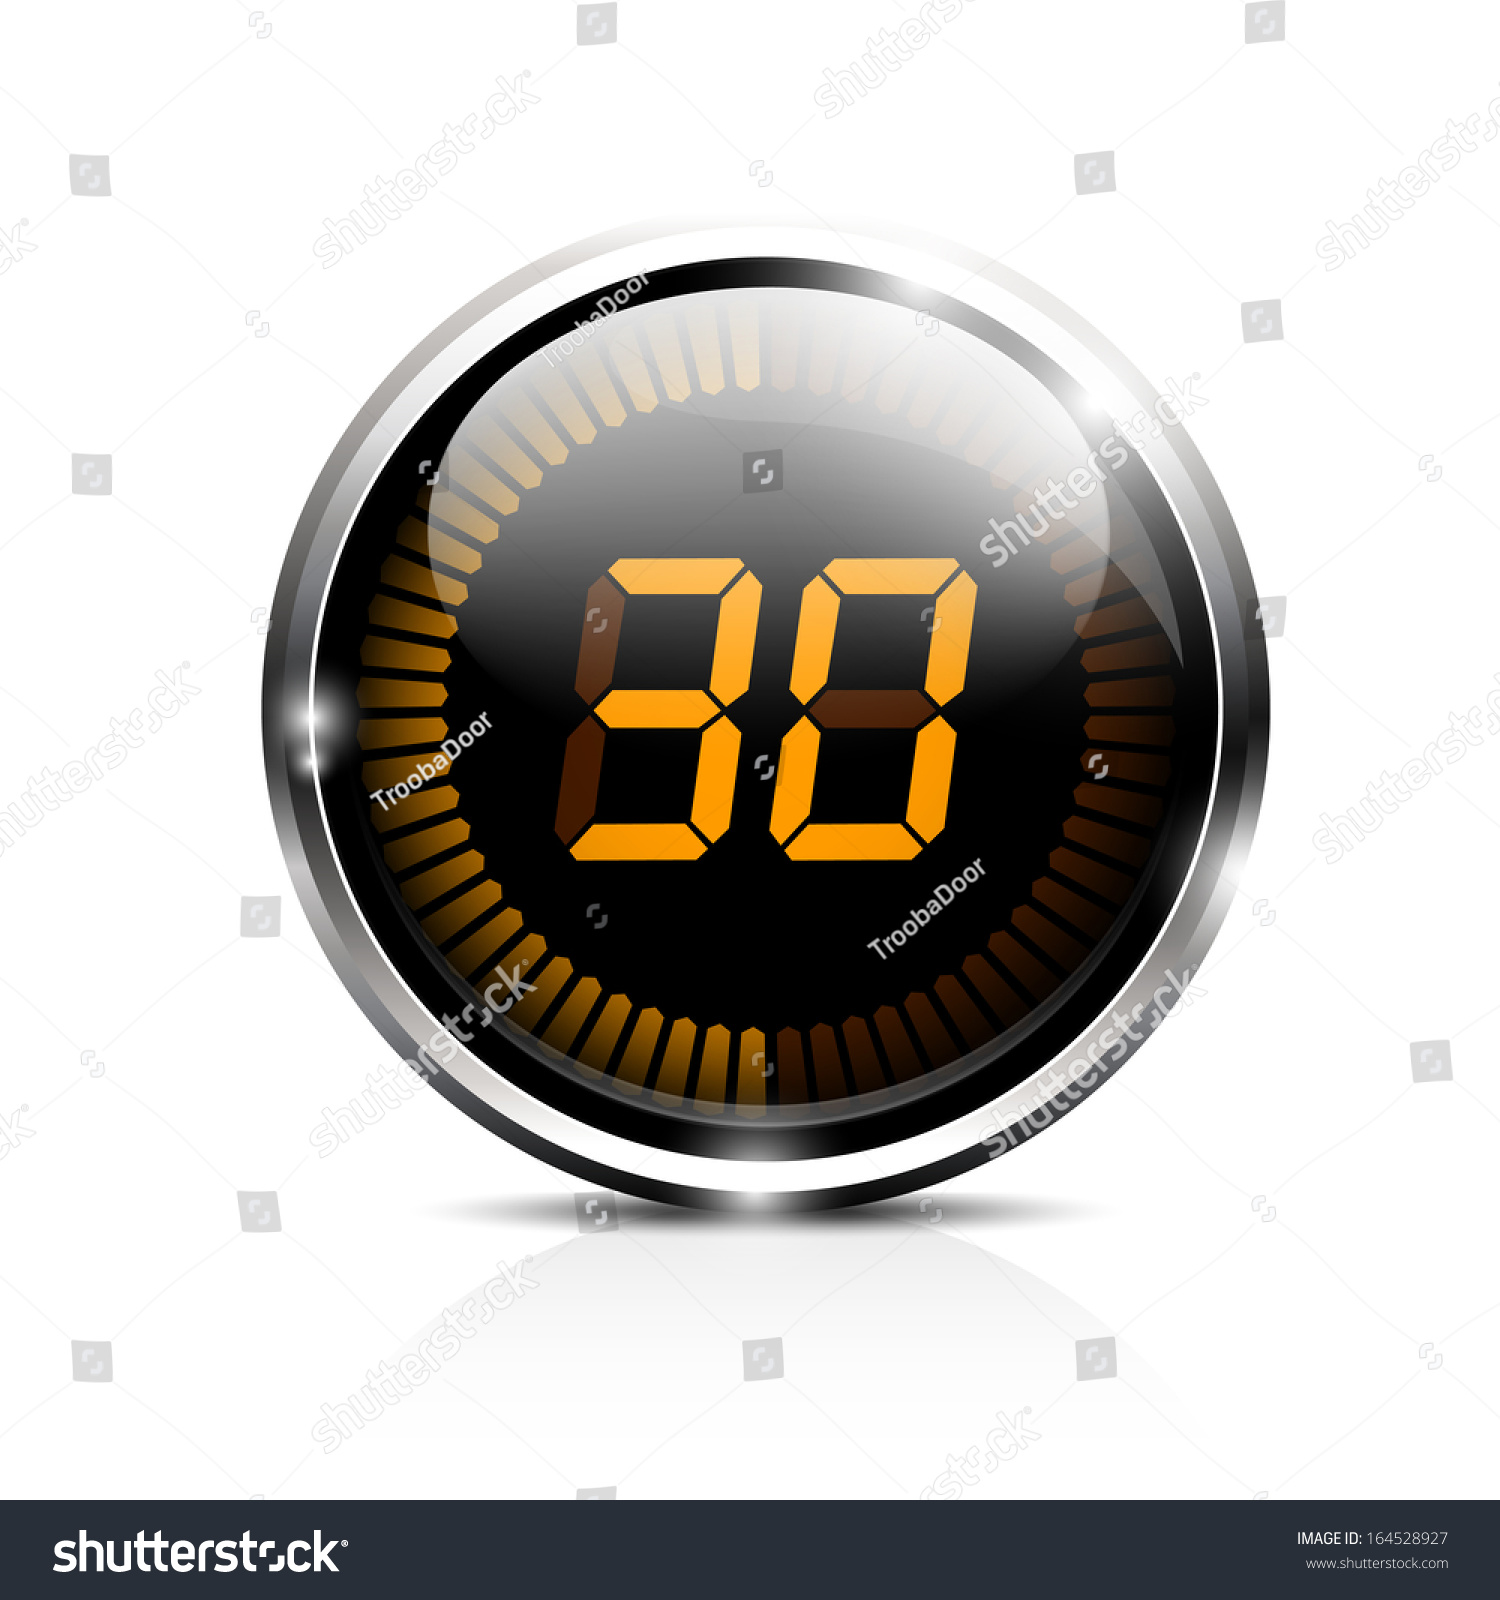 Electronic Brilliant Timer 30 Seconds Stock Vector ...